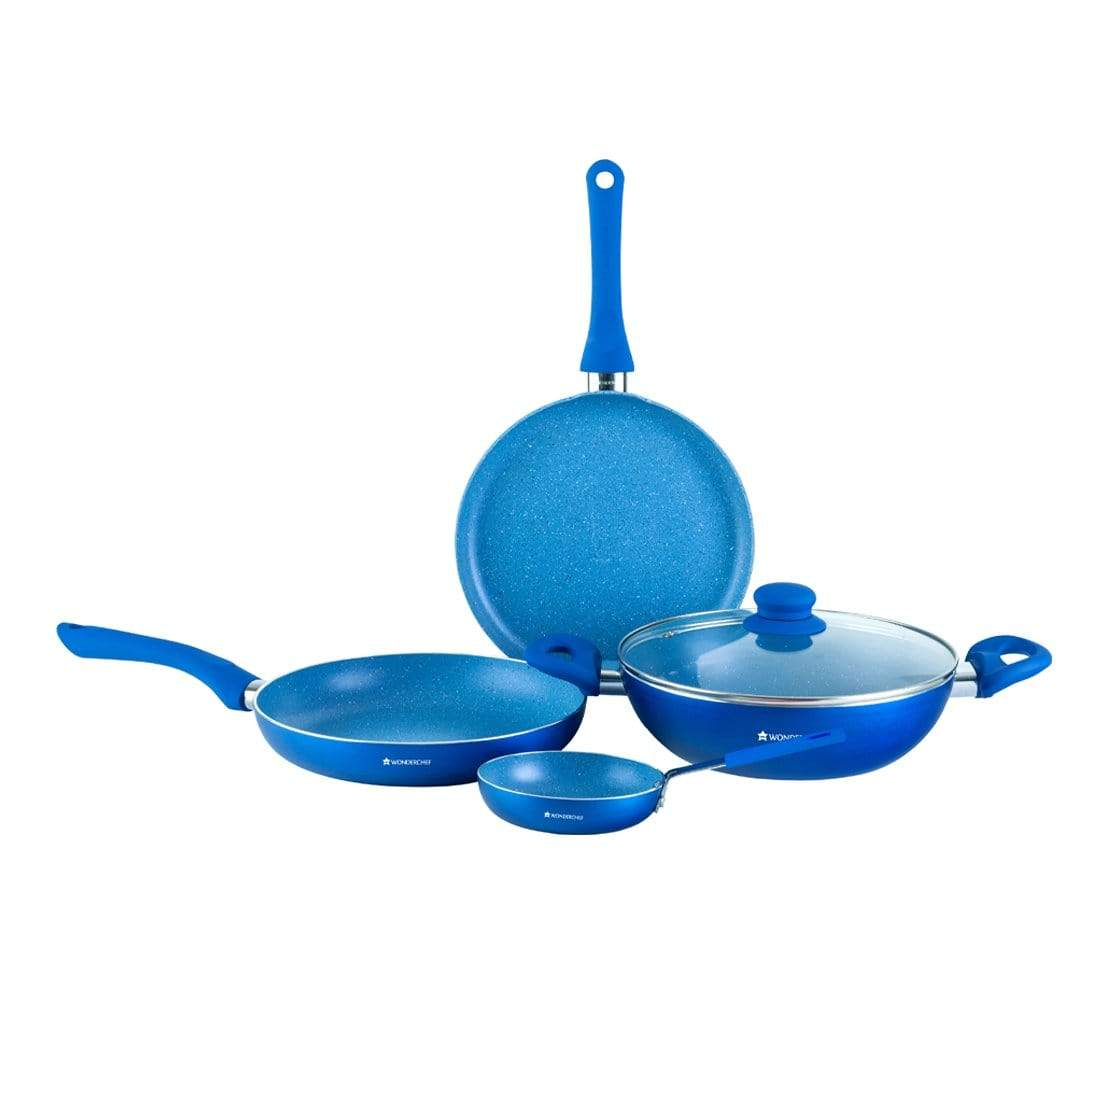 Wonderchef Cookware Wonderchef  Valencia Set - Blue